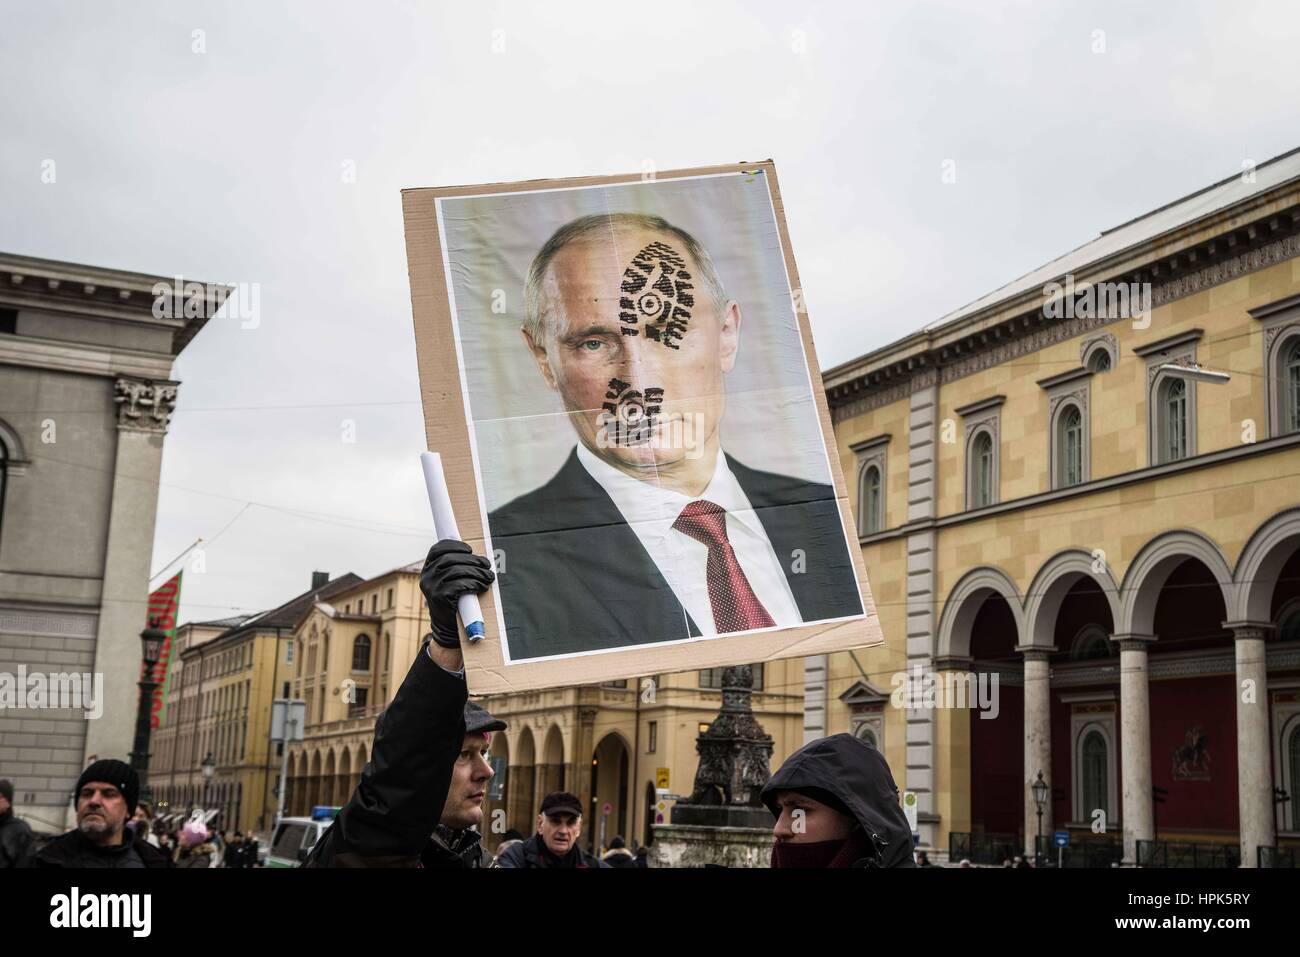 Munich, Germany. 18th Feb, 2017. Putin face with boot print. Anti-MSC protests organized by far- and radical-rightists - Stock Image